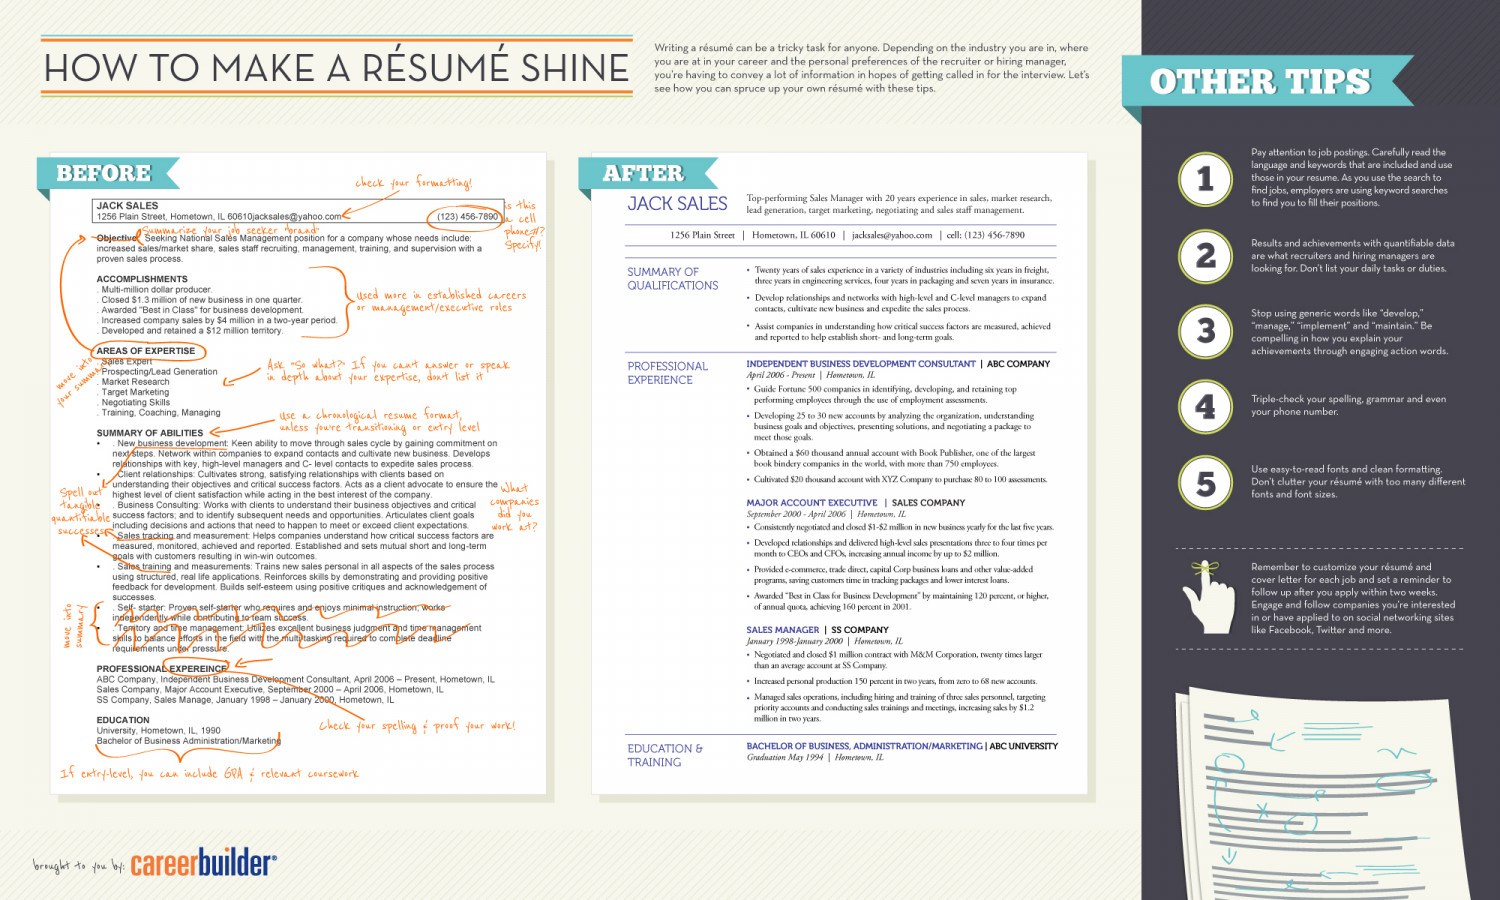 resume making agencies best online resume builder resume making agencies create a resume upload resume writing services how to make a r233